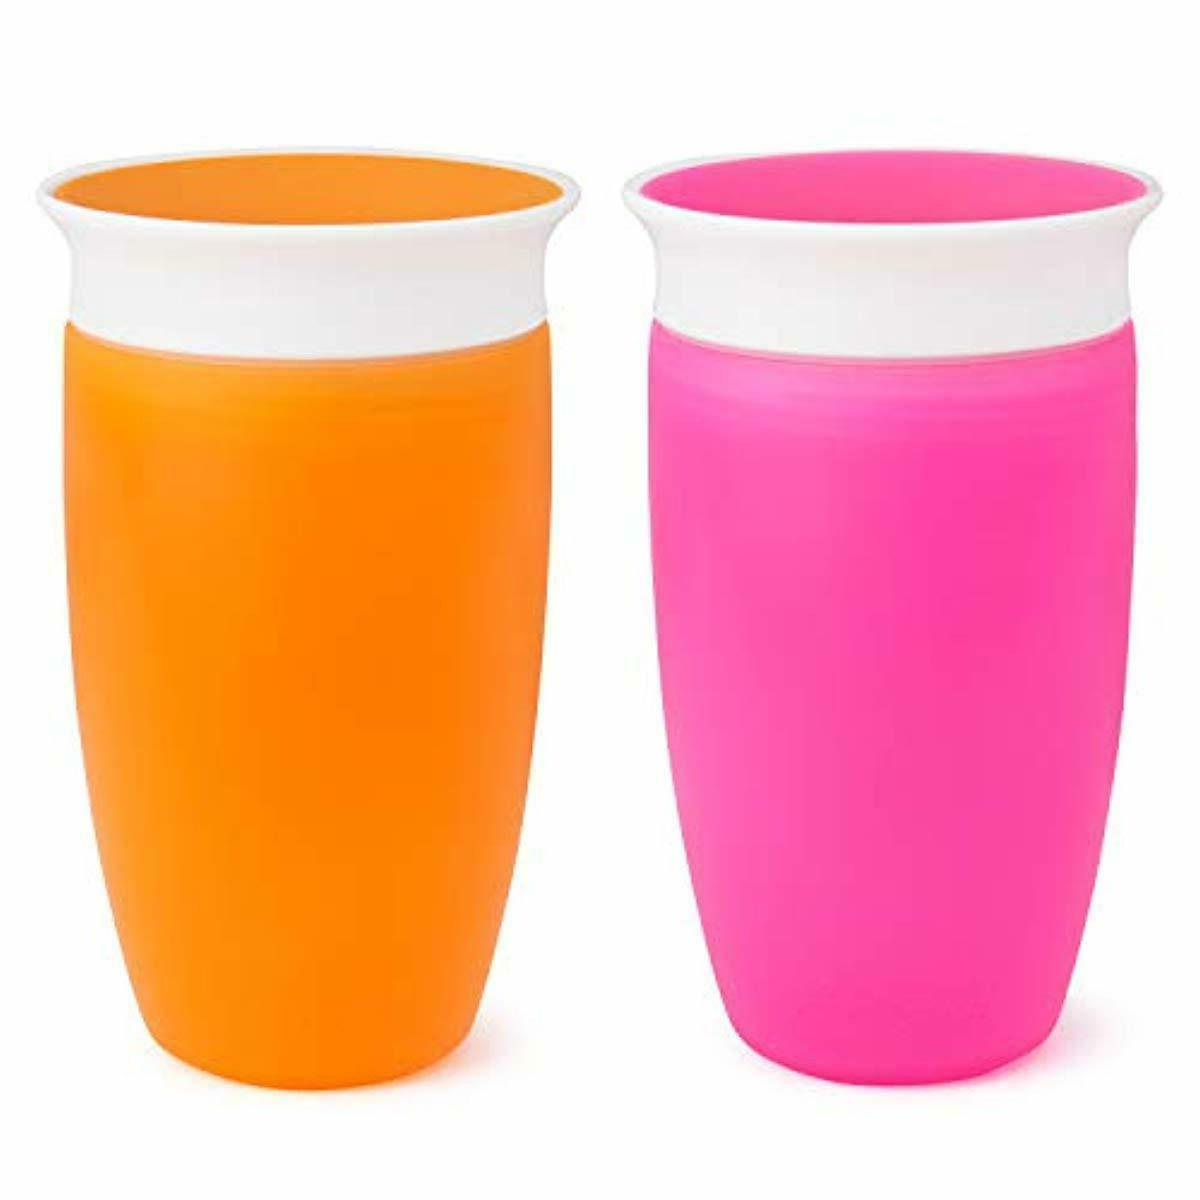 miracle 360 sippy cup pink orange 10